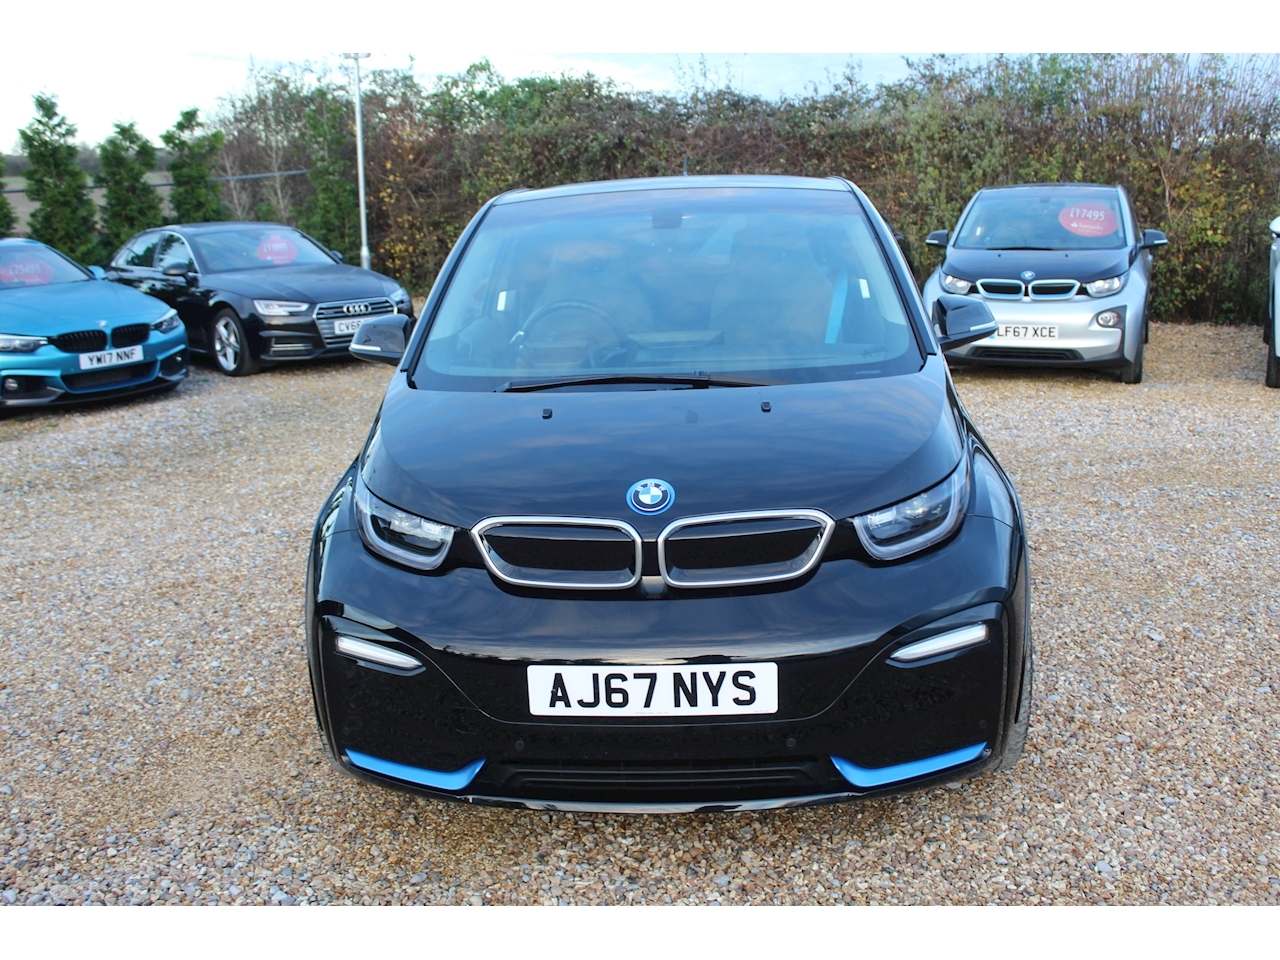 i3 Series i3s 94Ah with Range Extender Hatchback 0.6 Automatic Petrol Hybrid